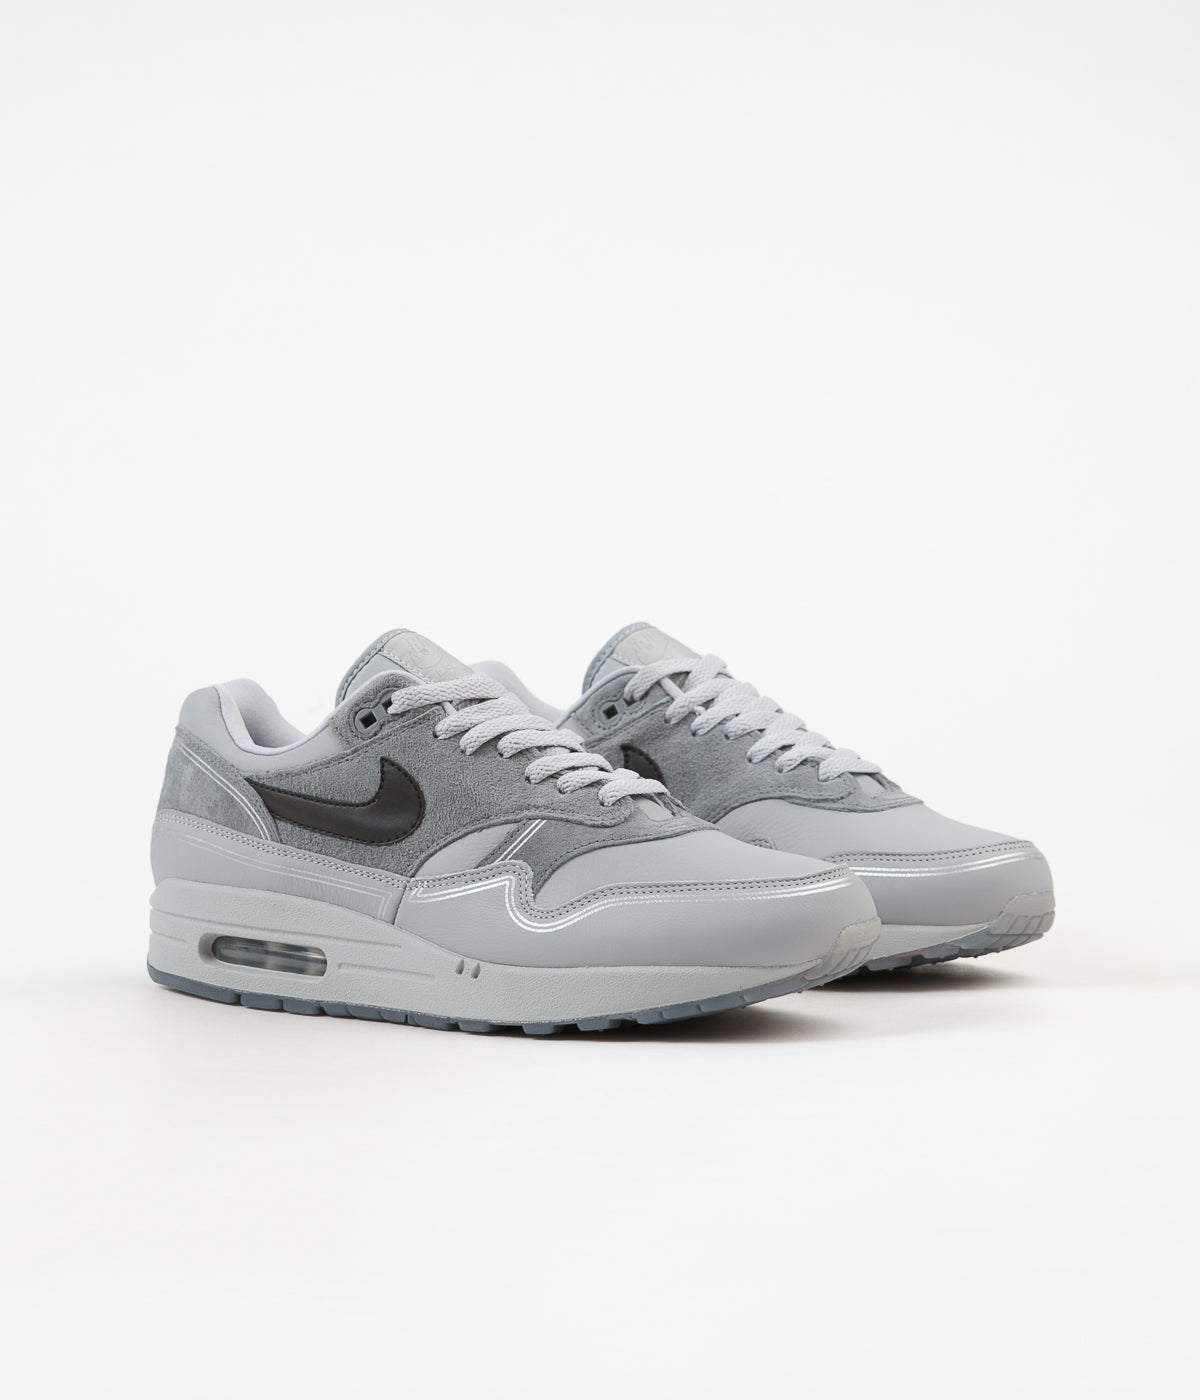 2dd4949ad139 ... Nike Air Max 1 Centre Pompidou Shoes - Wolf Grey   Black - Cool Grey ...